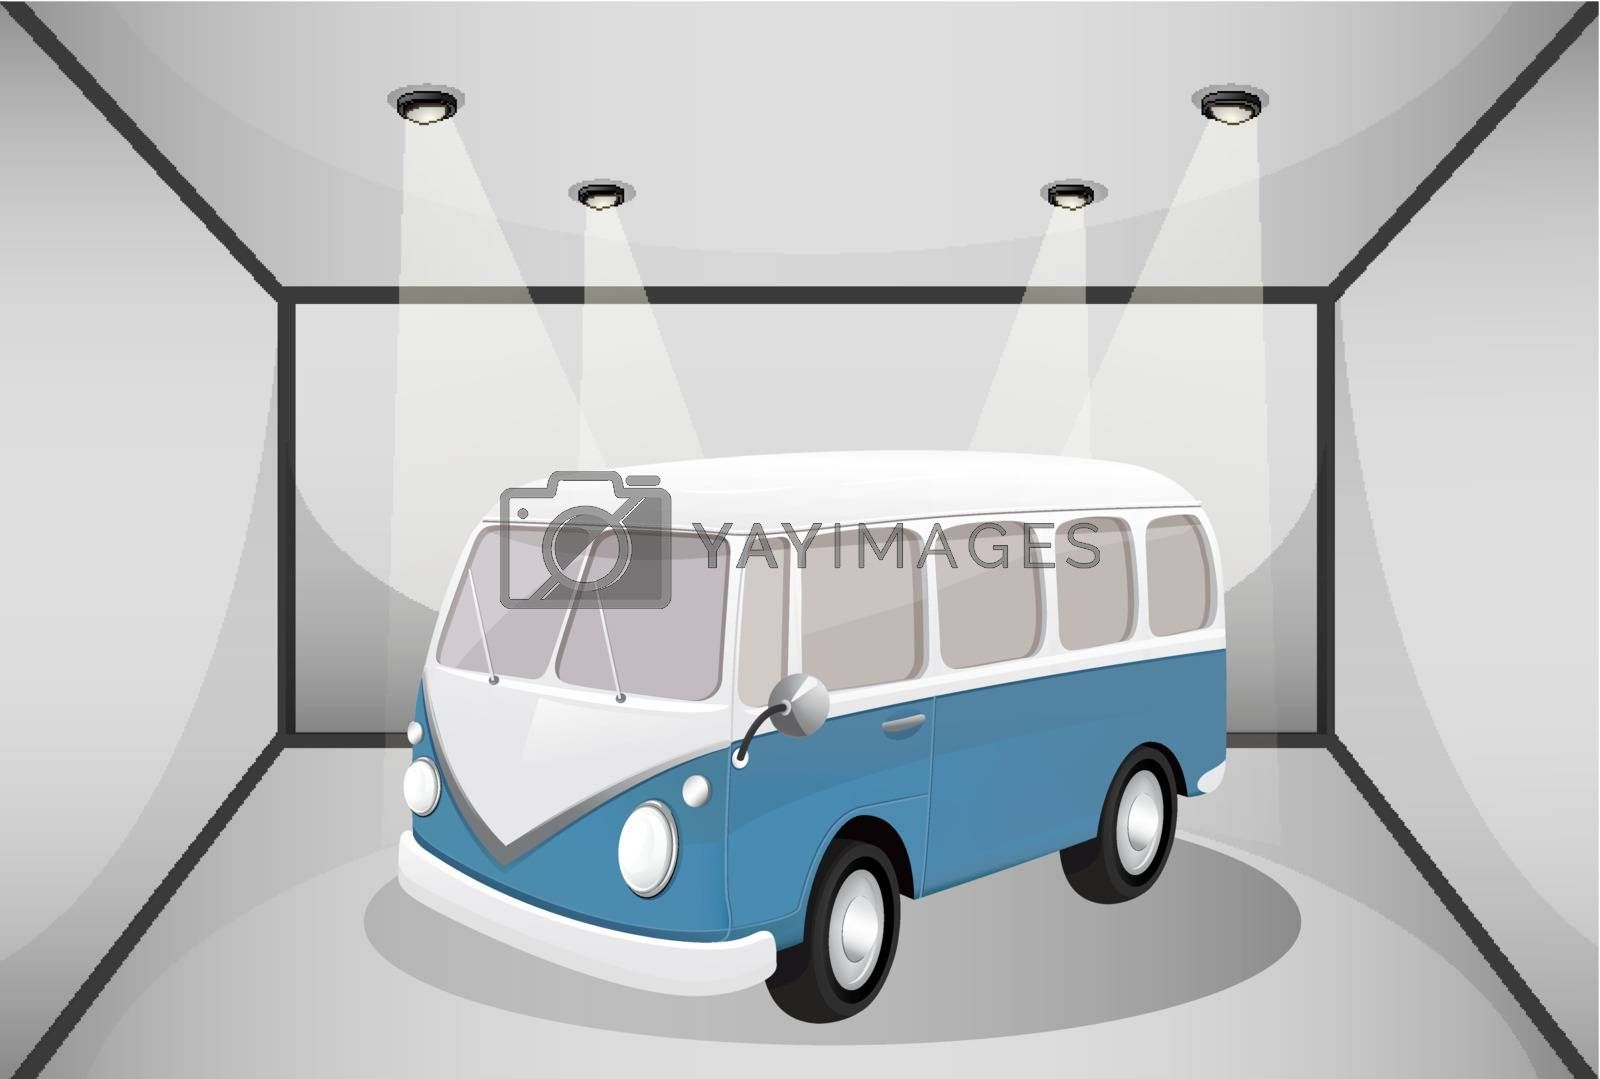 Royalty free image of A bus in the garage by iimages